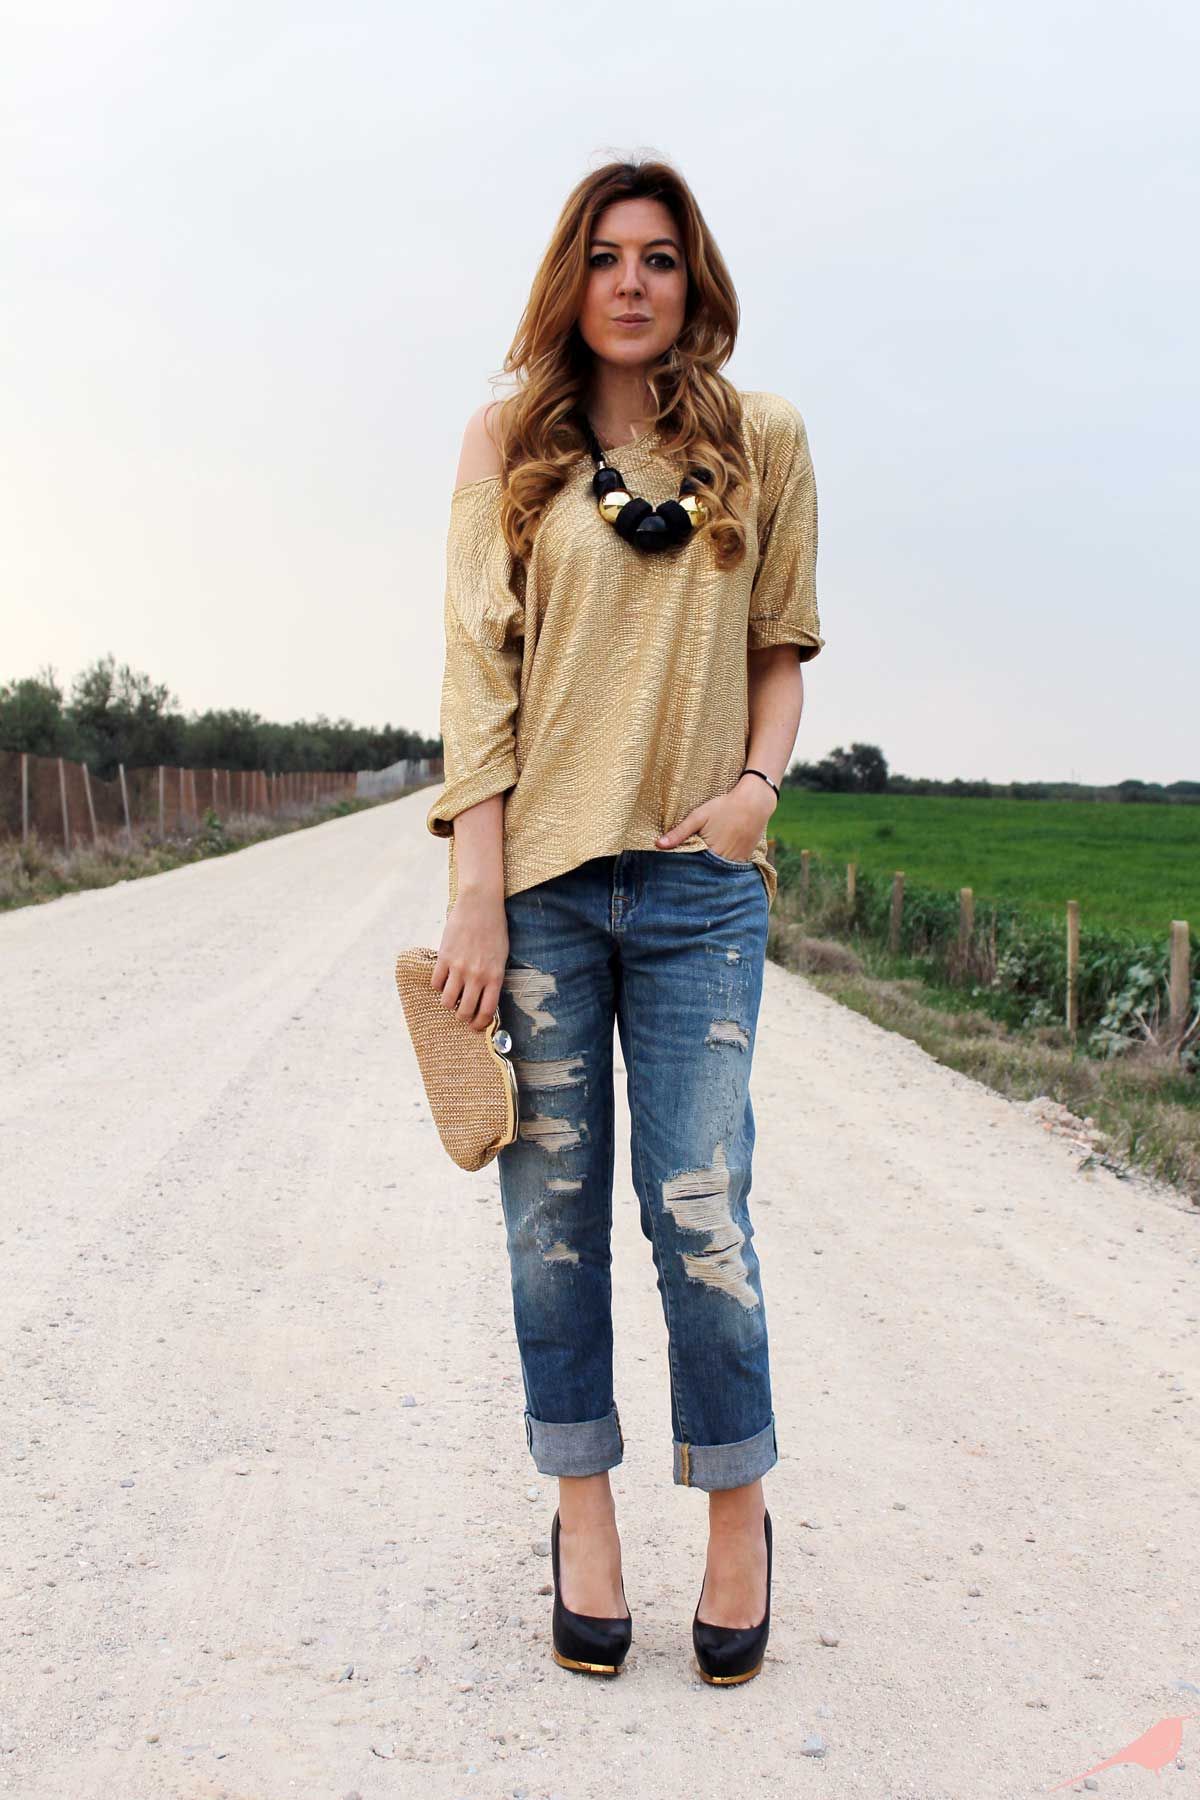 Stylish jeans for women